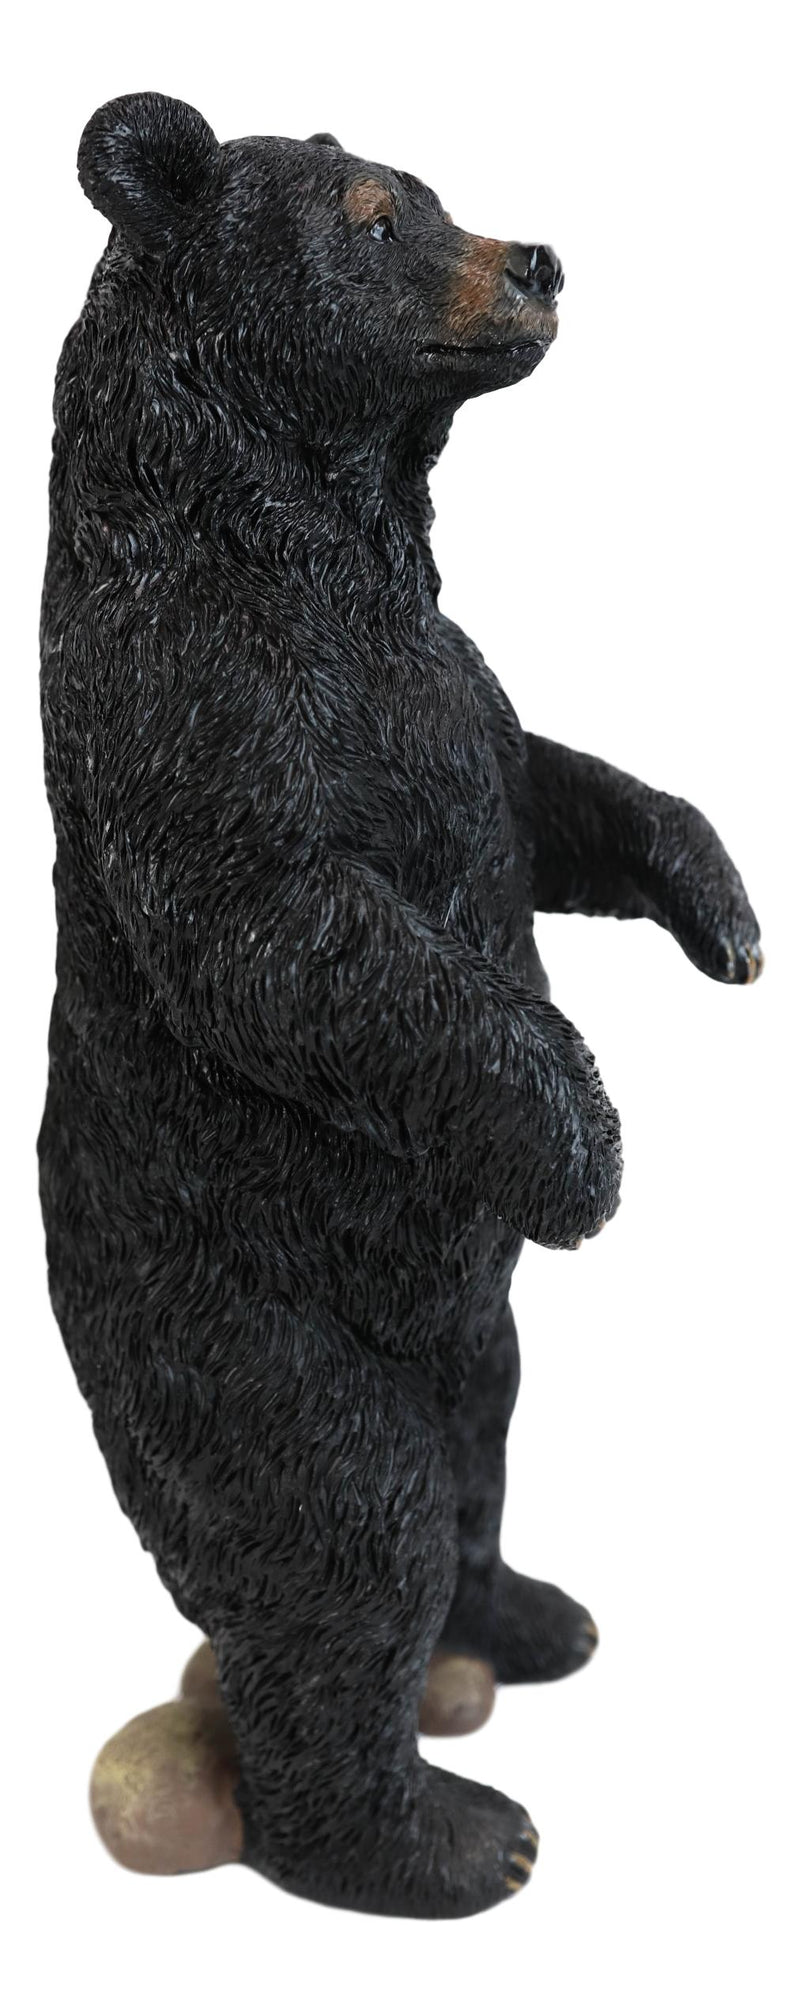 "Western Rustic Forest Standing Black Bear Statue 12""H Cabin Lodge Bears Figurine"